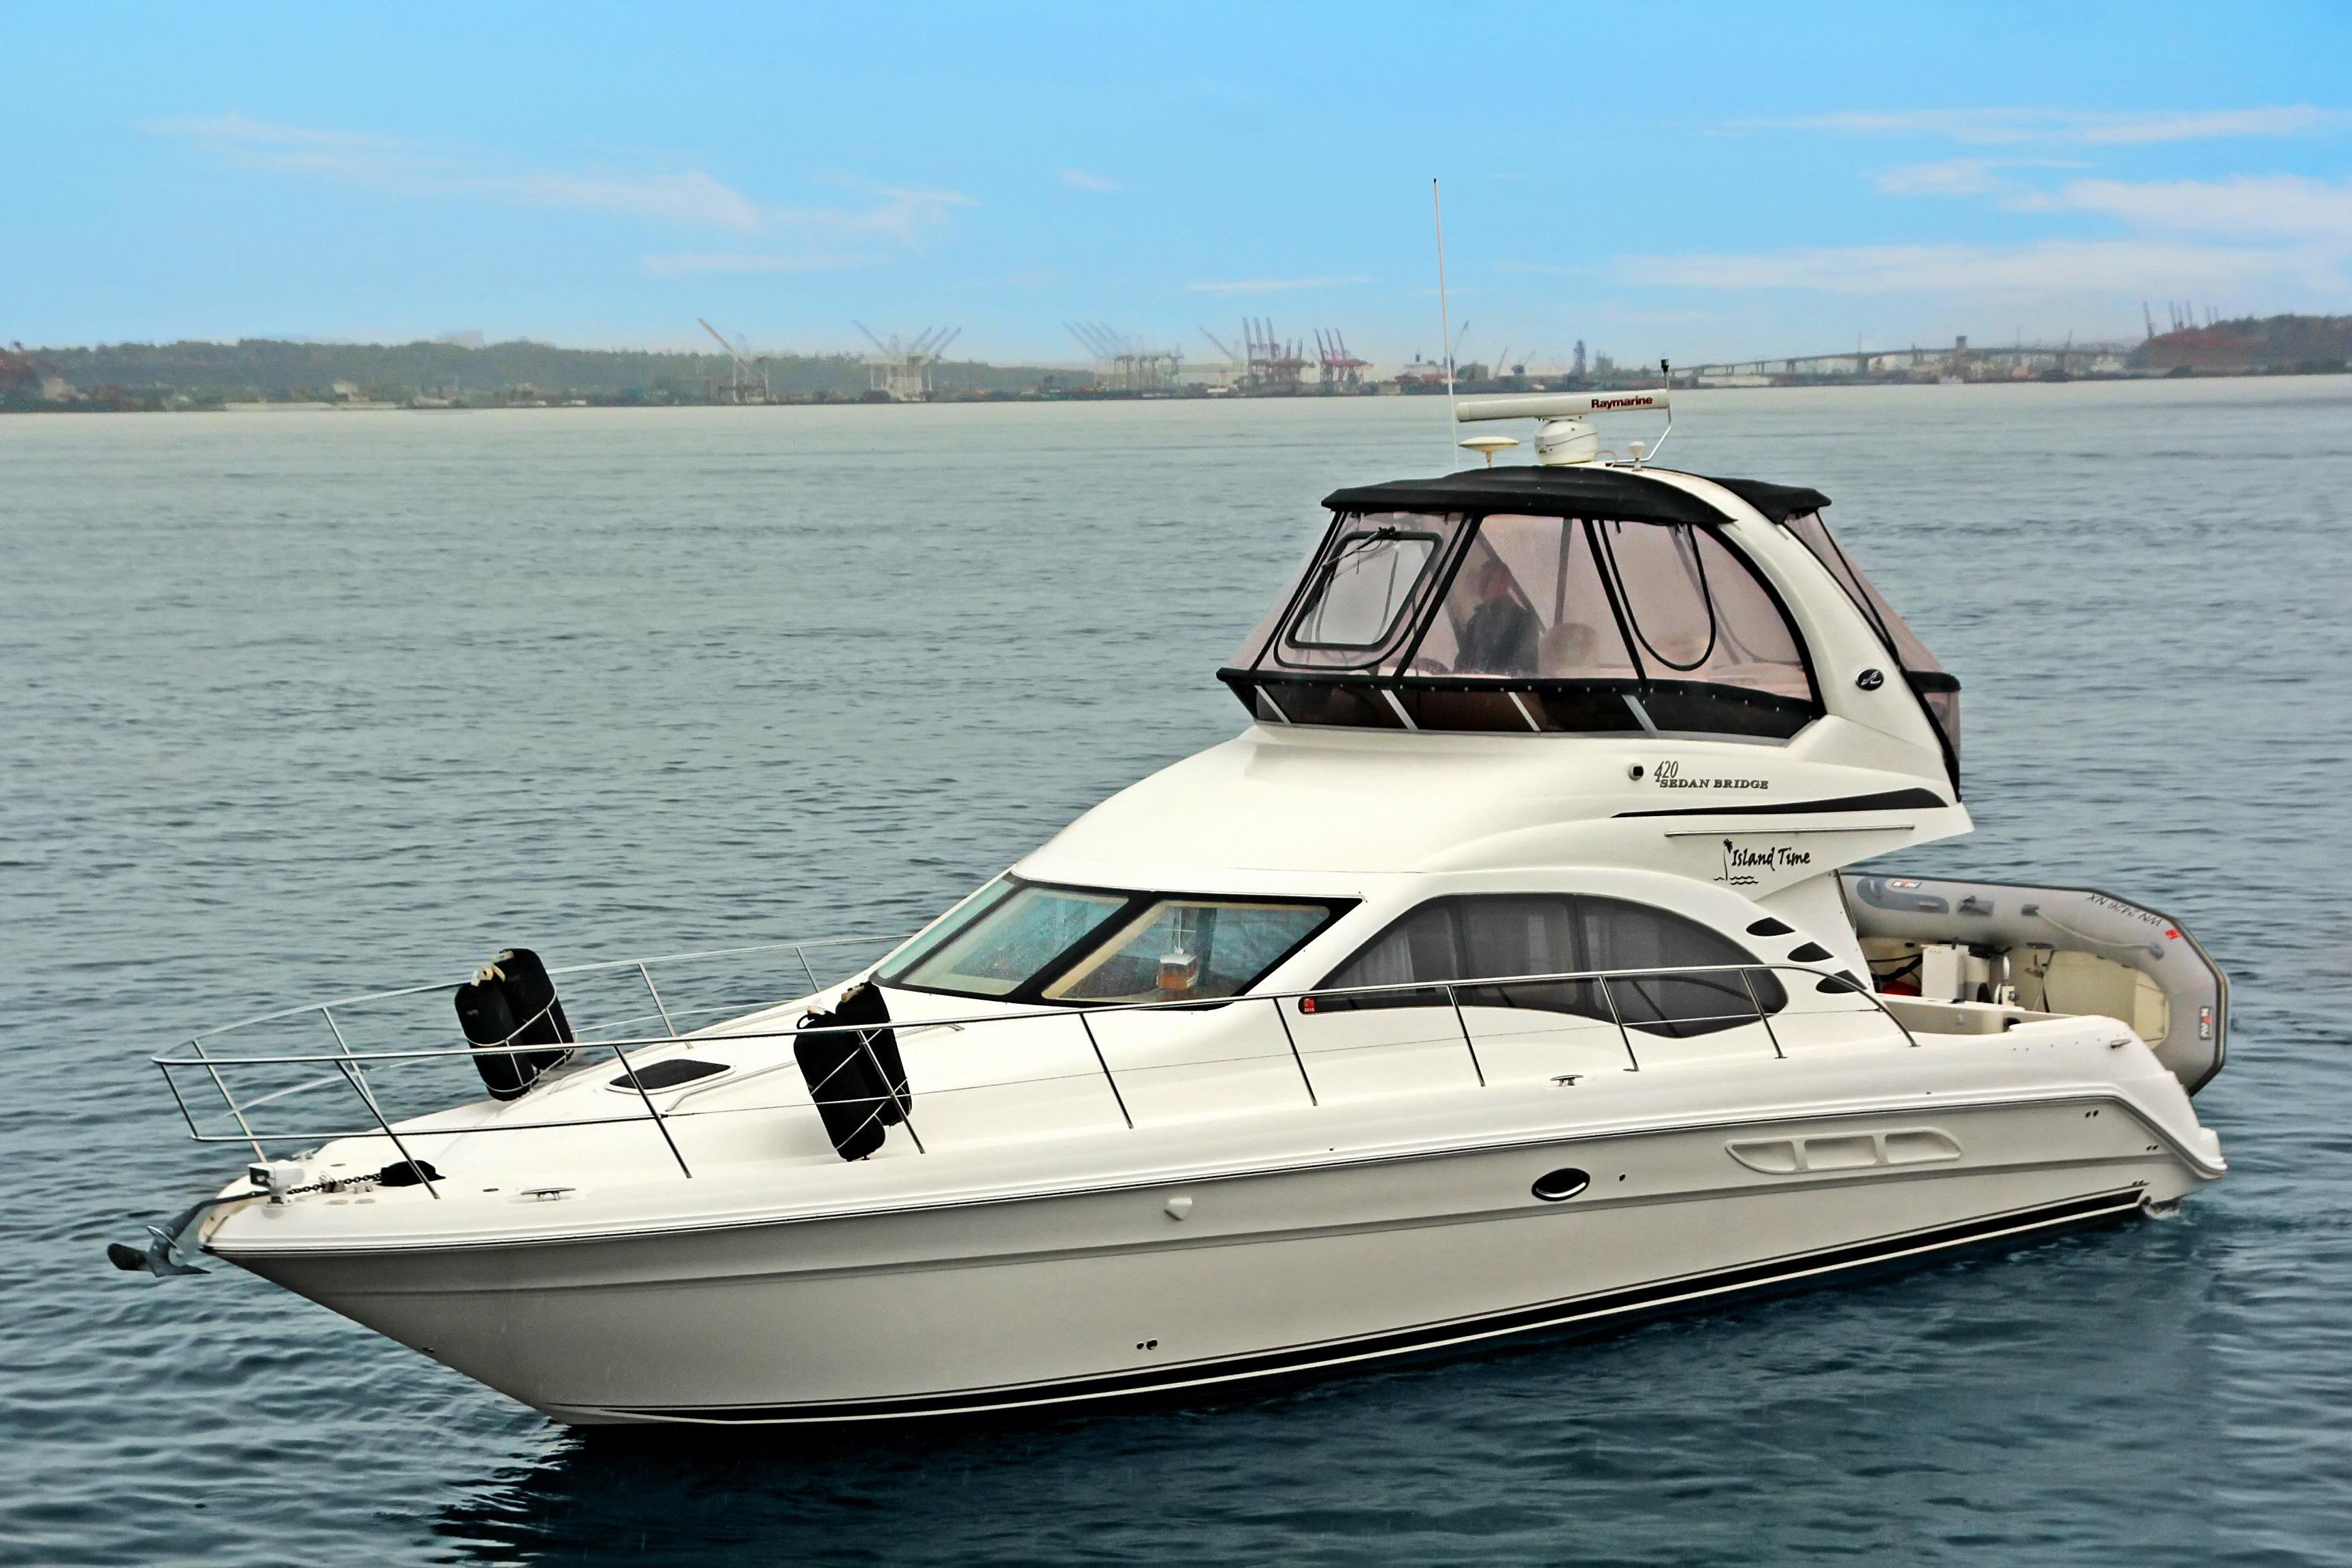 Sea Ray 420 Sedan Bridge Island Time - 420 Sedan Bridge